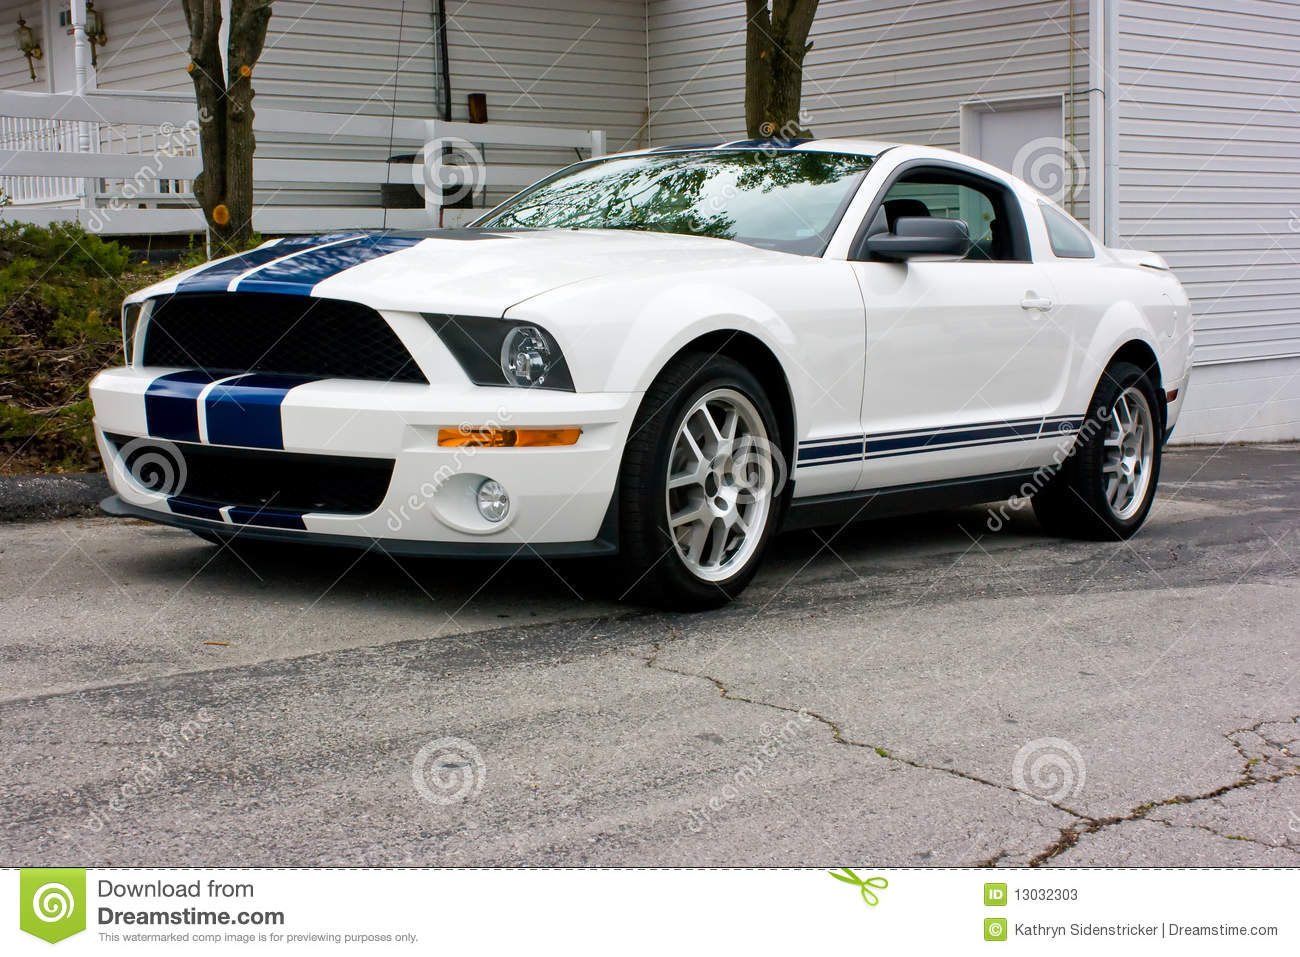 2009 ford mustang shelby cobra gt 500 white with blue racing strips front and side view aluminum wheels shaker hood